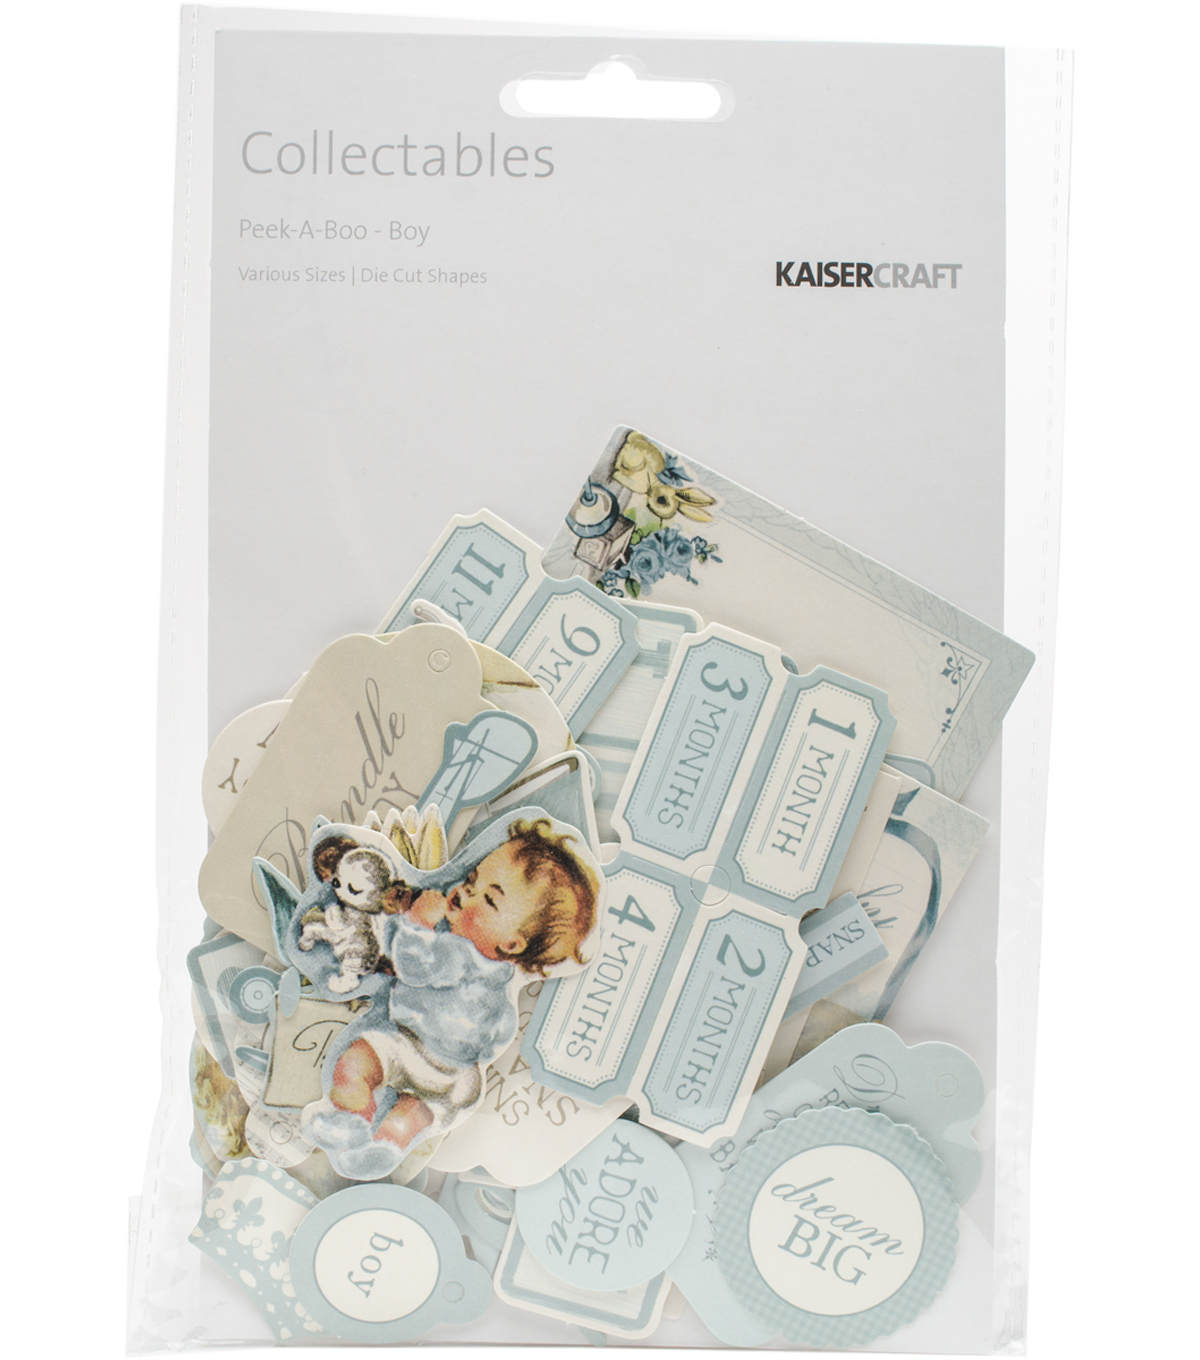 Kaisercraft Peek-A-Boo Collectables Cardstock Die-Cuts-Boy